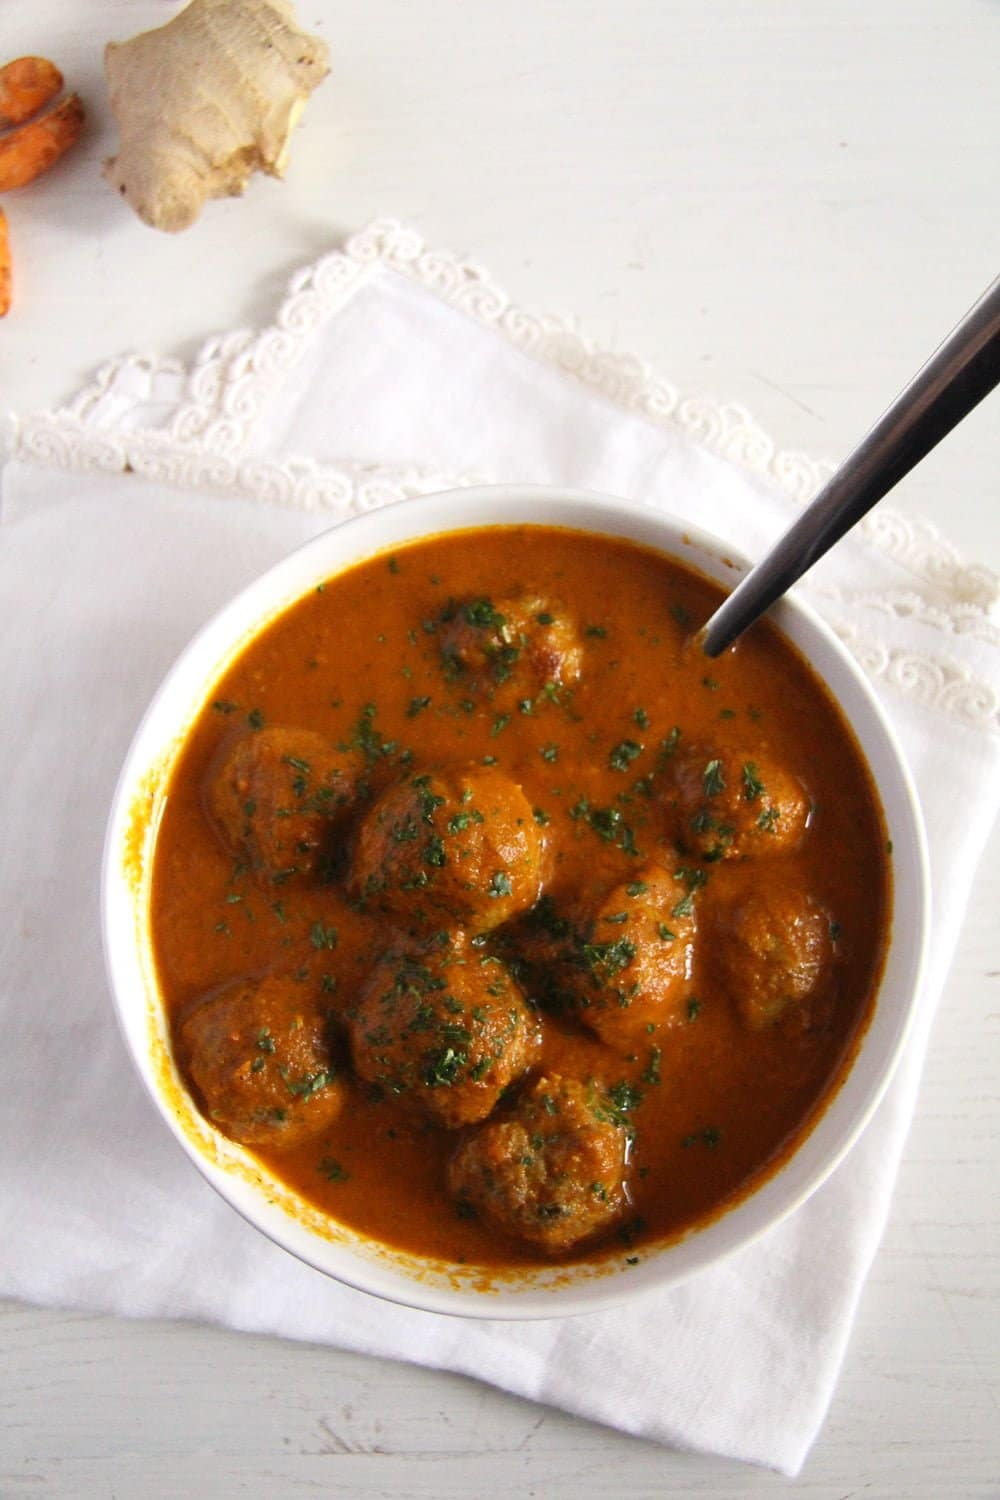 meatballs turkey Turkey Meatballs in Turmeric Sauce